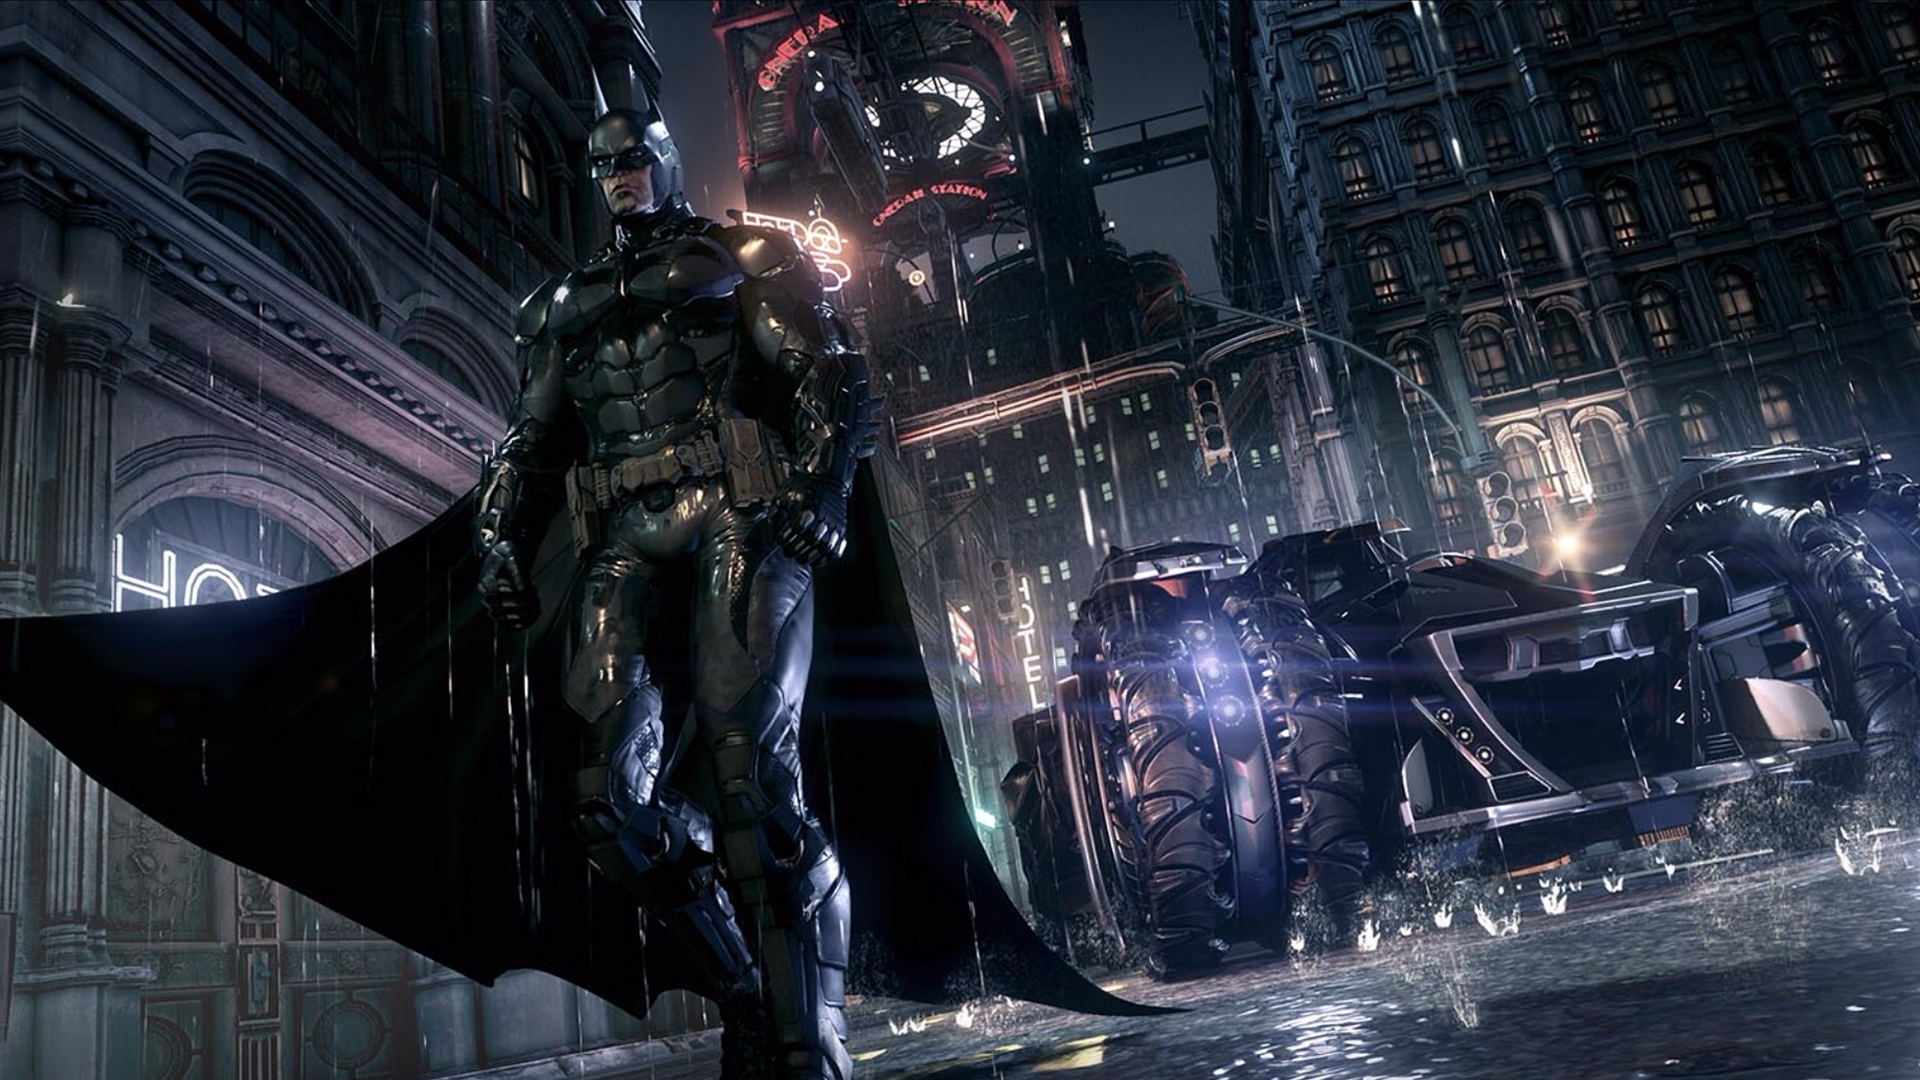 For the first time in the  Arkham  series, players can fulfill one of the most common fantasies of Batman fans, and drive the game's brilliantly-realized vision of the dangerous and iconic Batmobile.